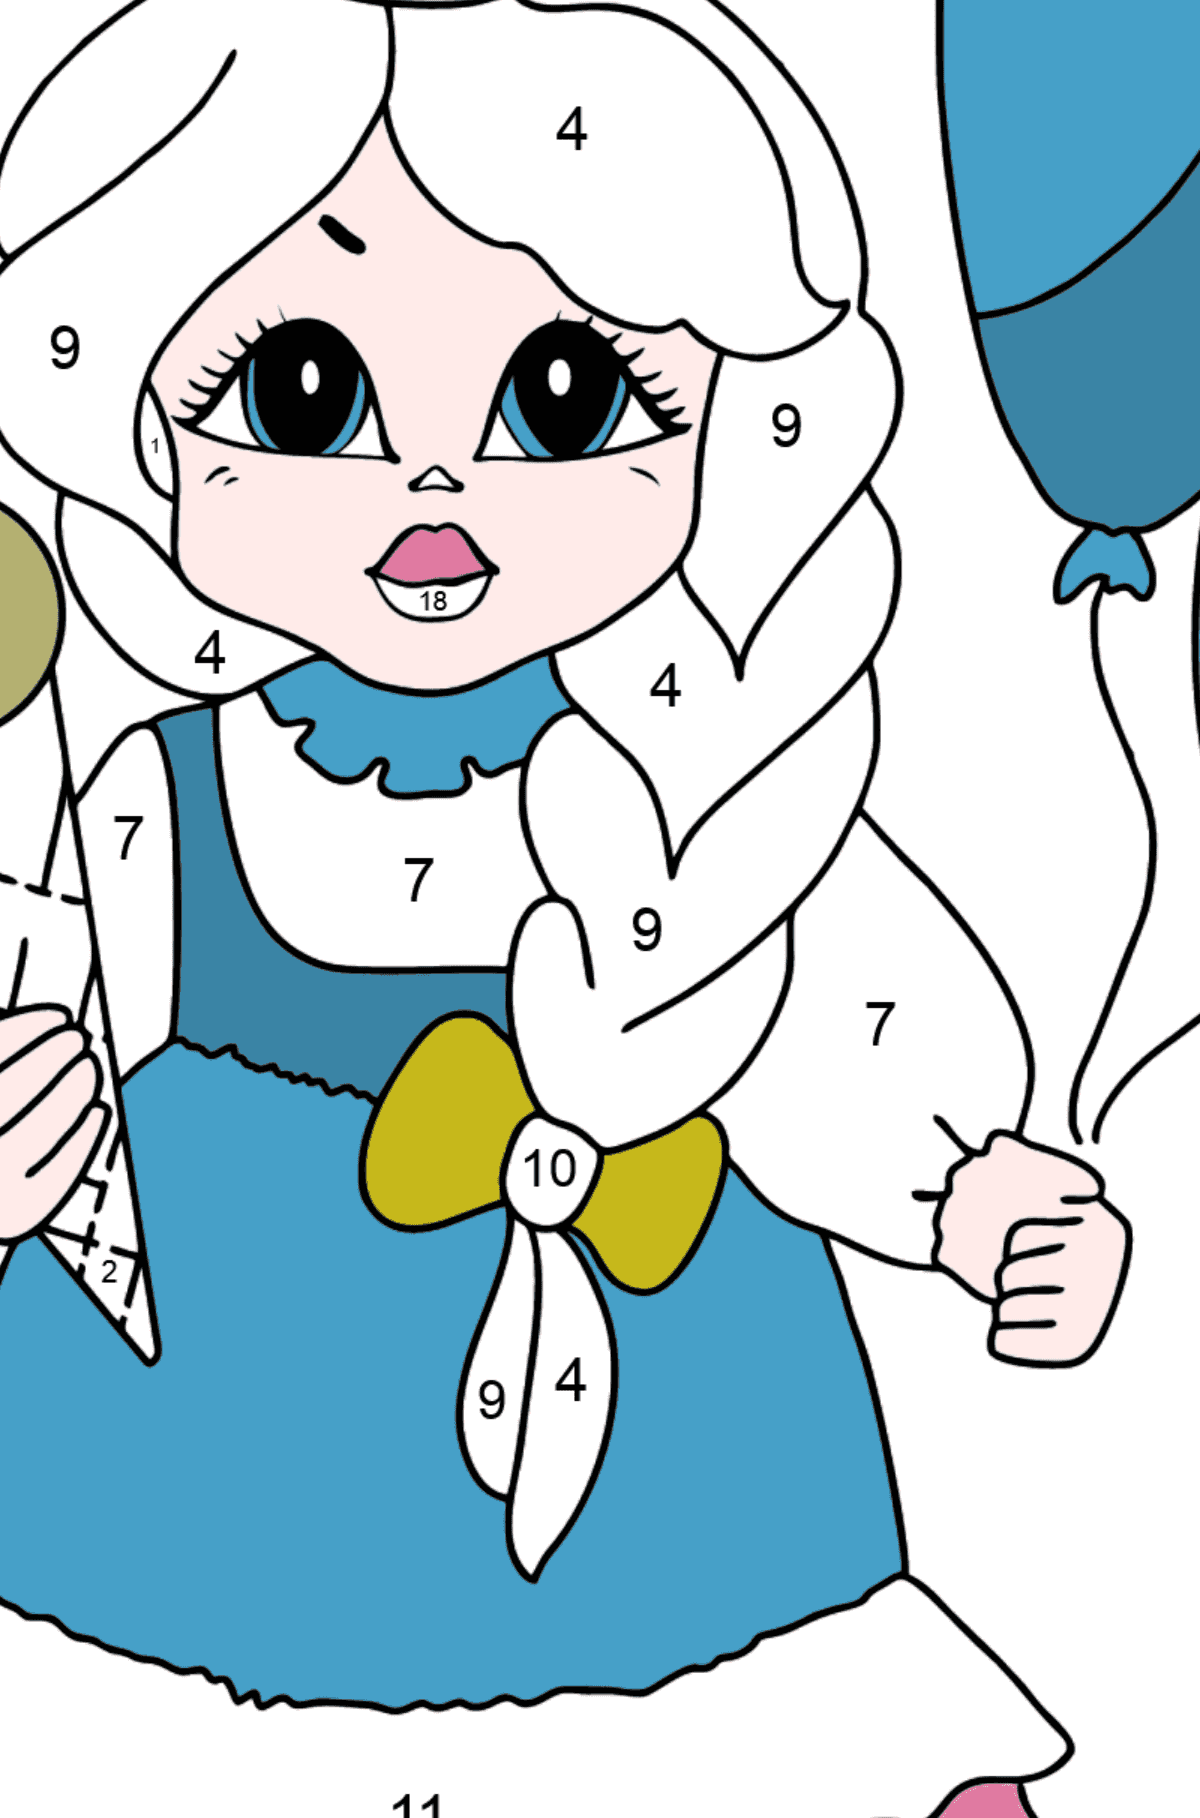 Coloring Page - A Princess with Ice Сream - For Girls - Coloring by Numbers for Kids